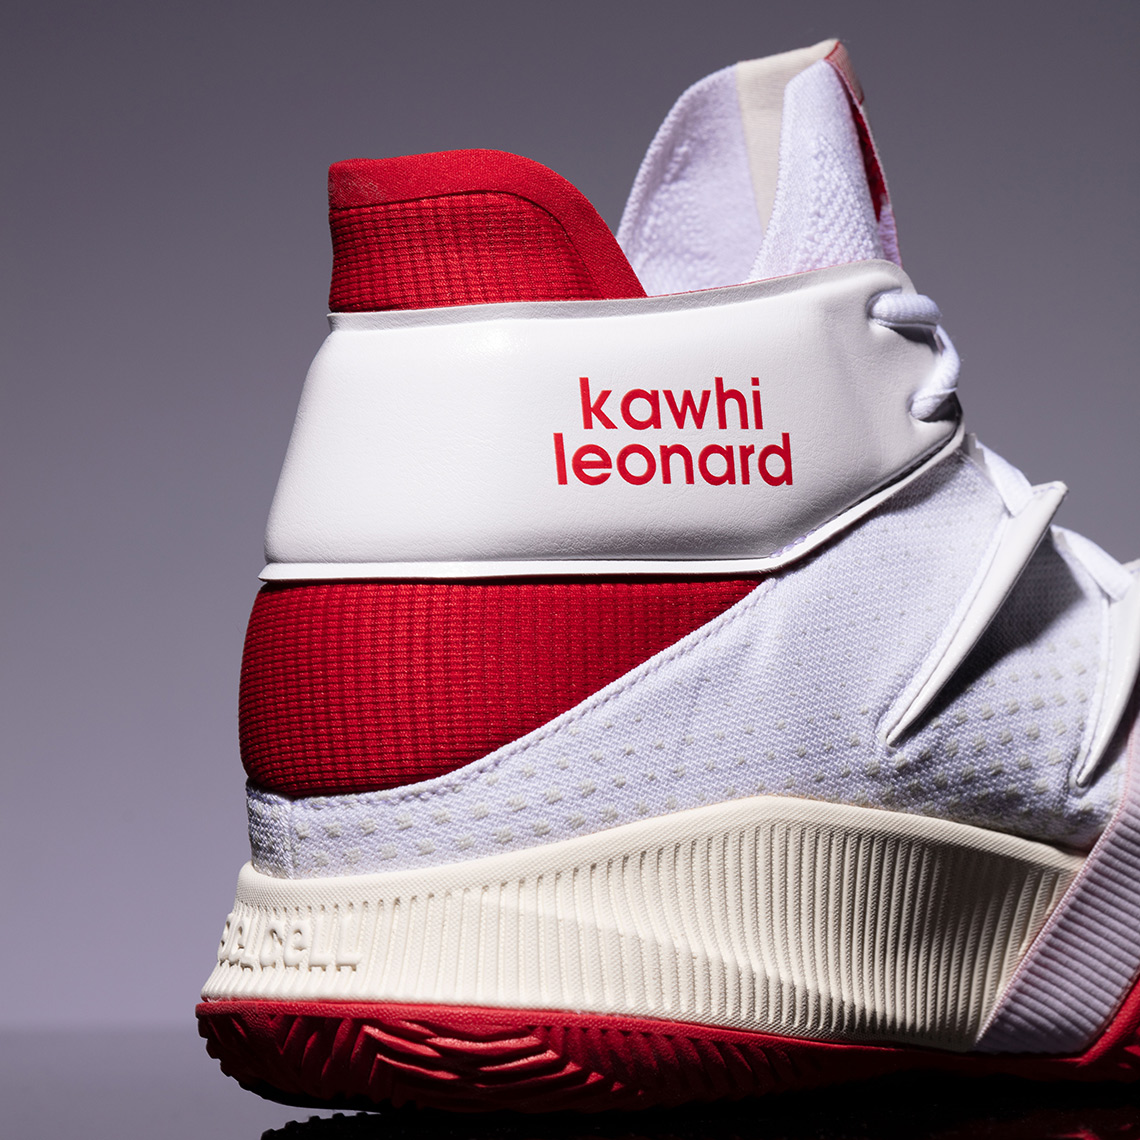 Top Rated Basketball Shoes 2020.Kawhi Leonard New Balance Shoes First Look Release Info